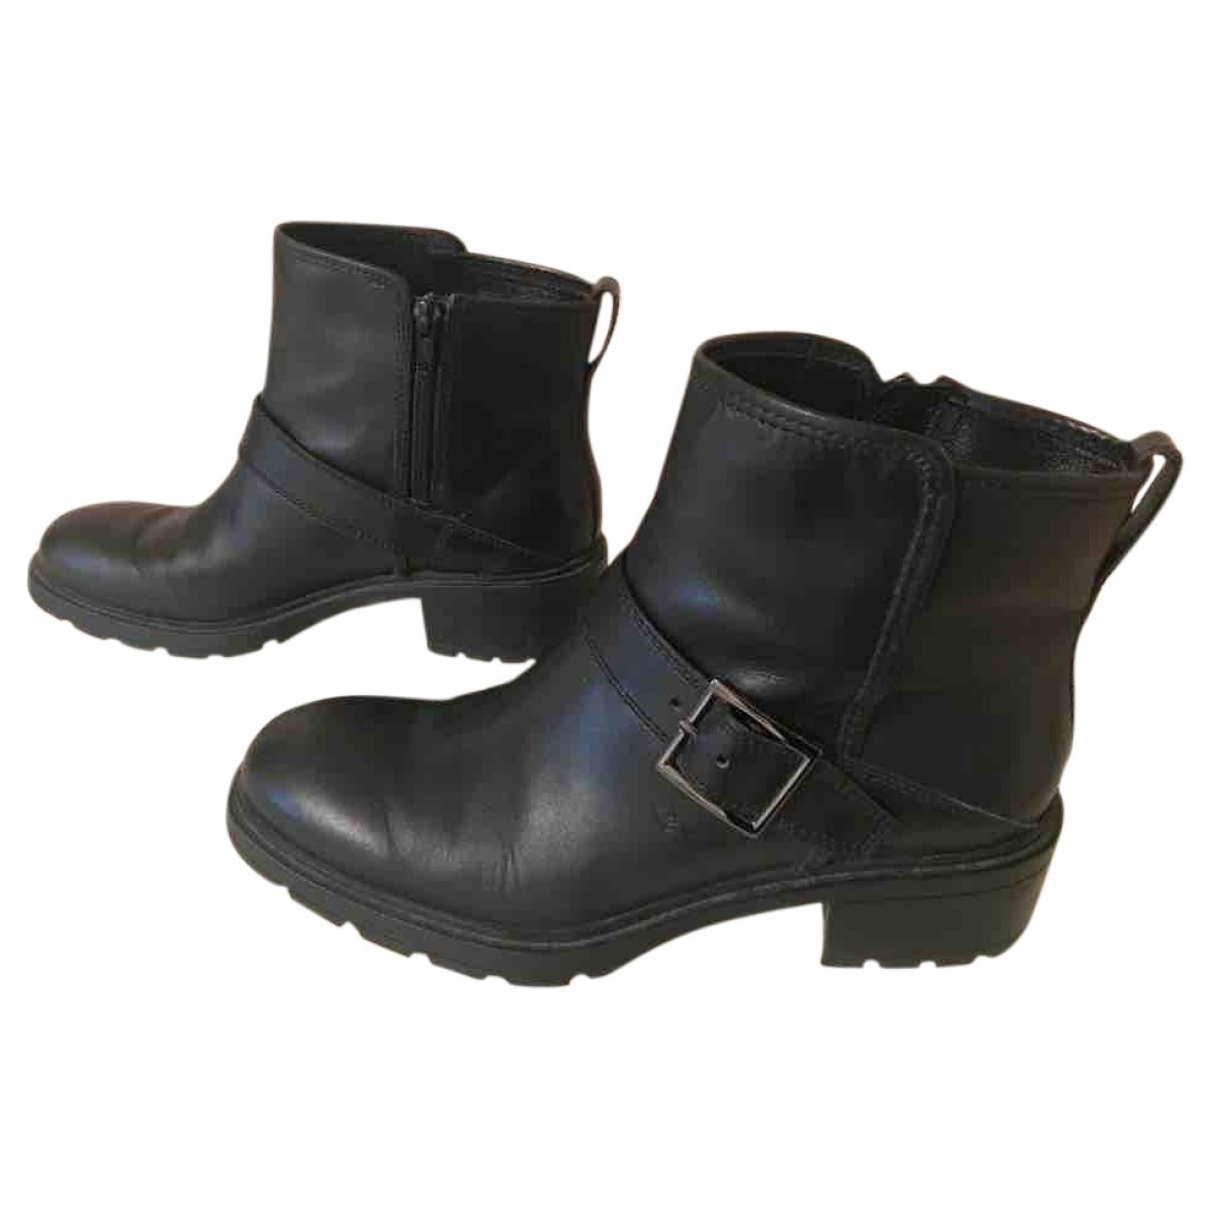 Hogan \N Black Leather Boots for Women 38 EU